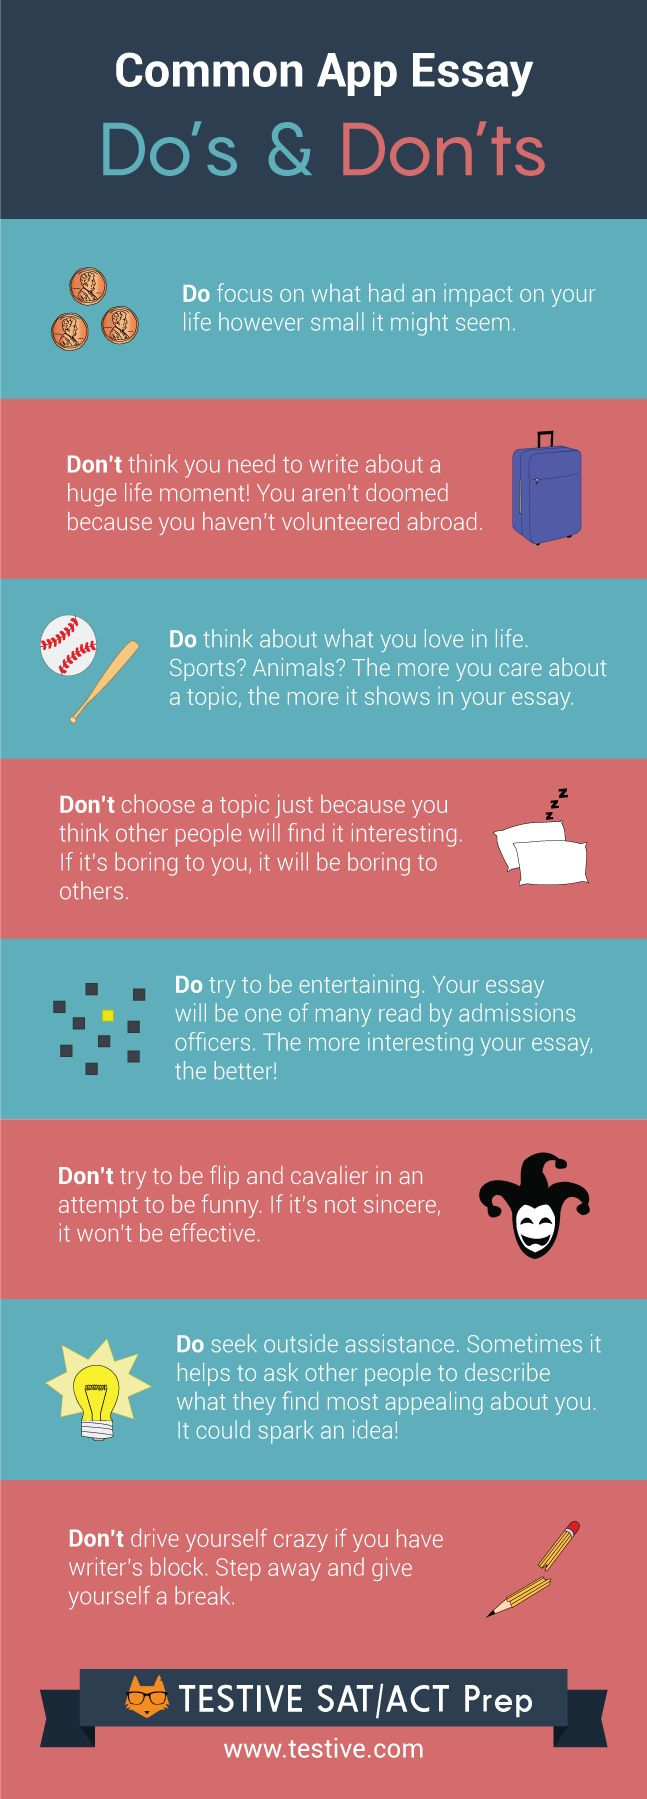 best college essay ideas college essay tips  law of attraction quotes